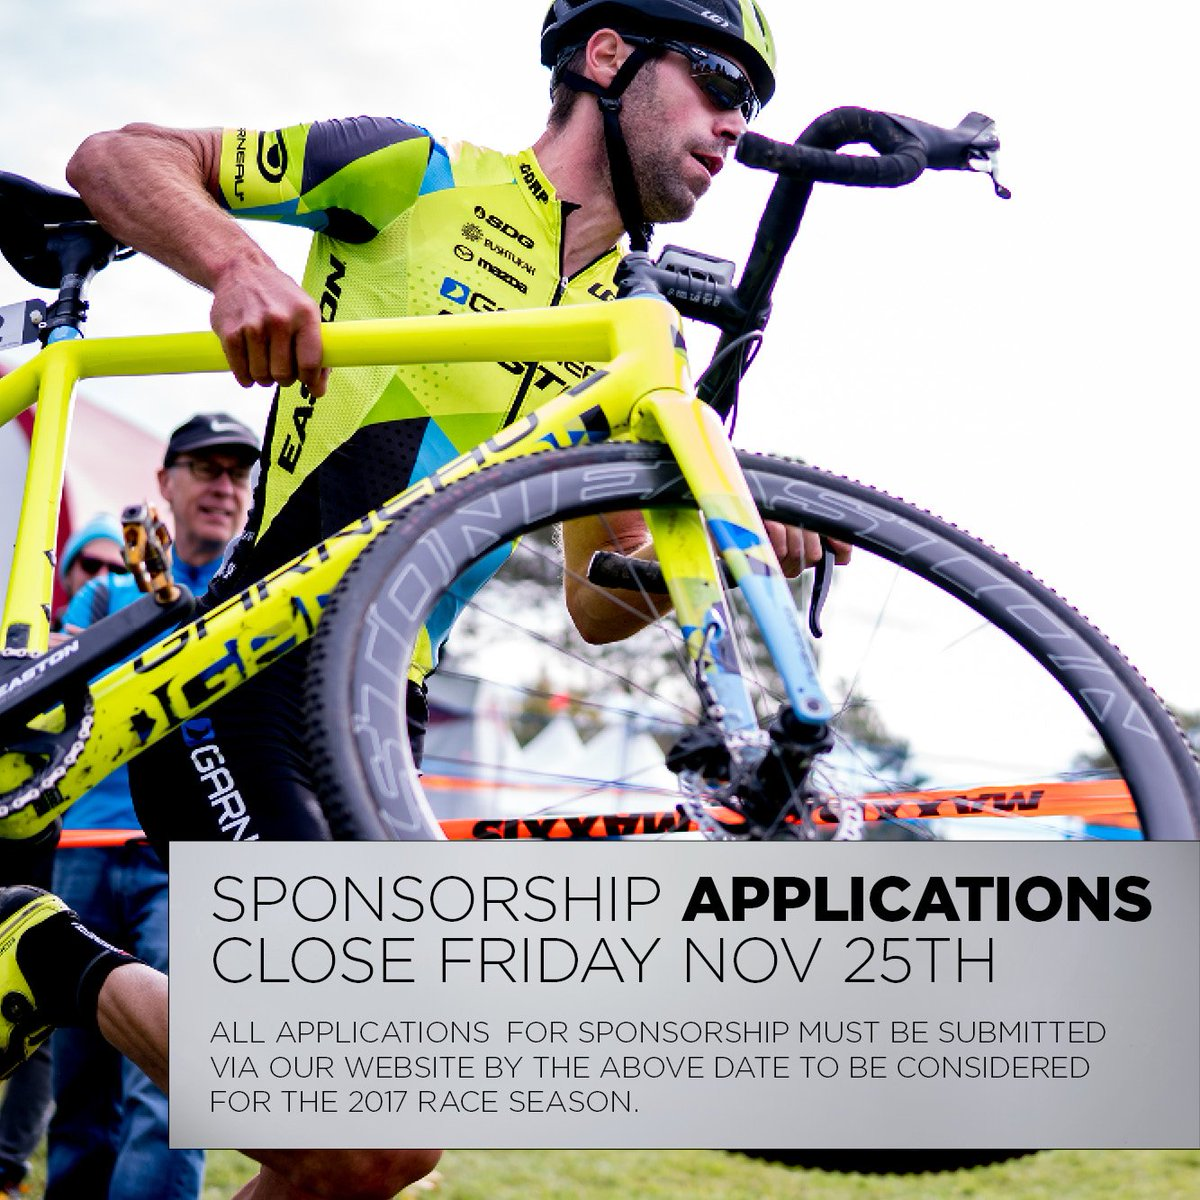 Sponsorship applications close 25th November, follow this link to apply: https://t.co/dmJHkIMDgh https://t.co/yslDuk4I3m